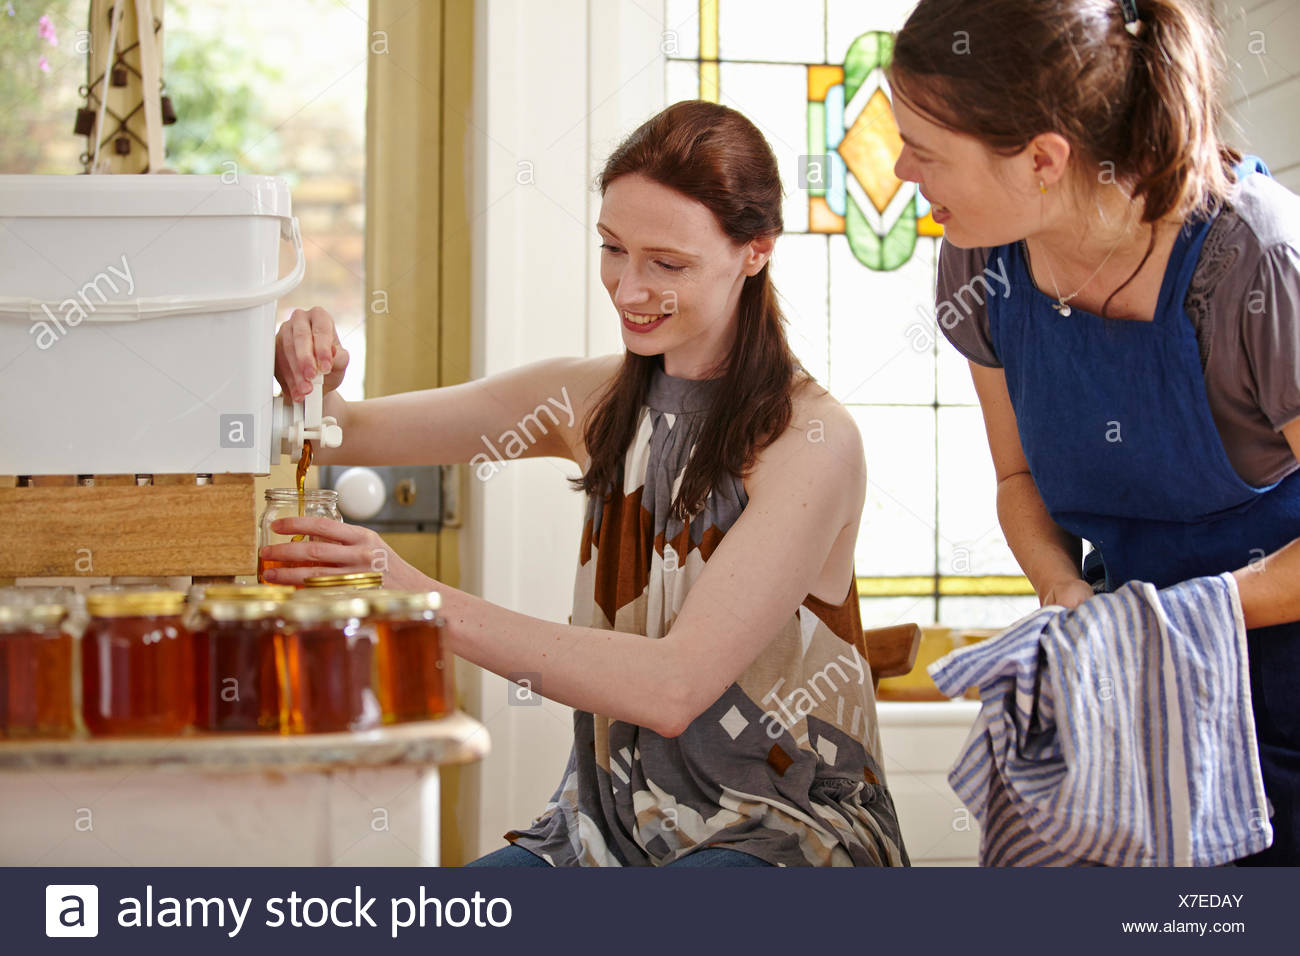 Female beekeepers in kitchen, bottling filtered honey from beehive - Stock Image